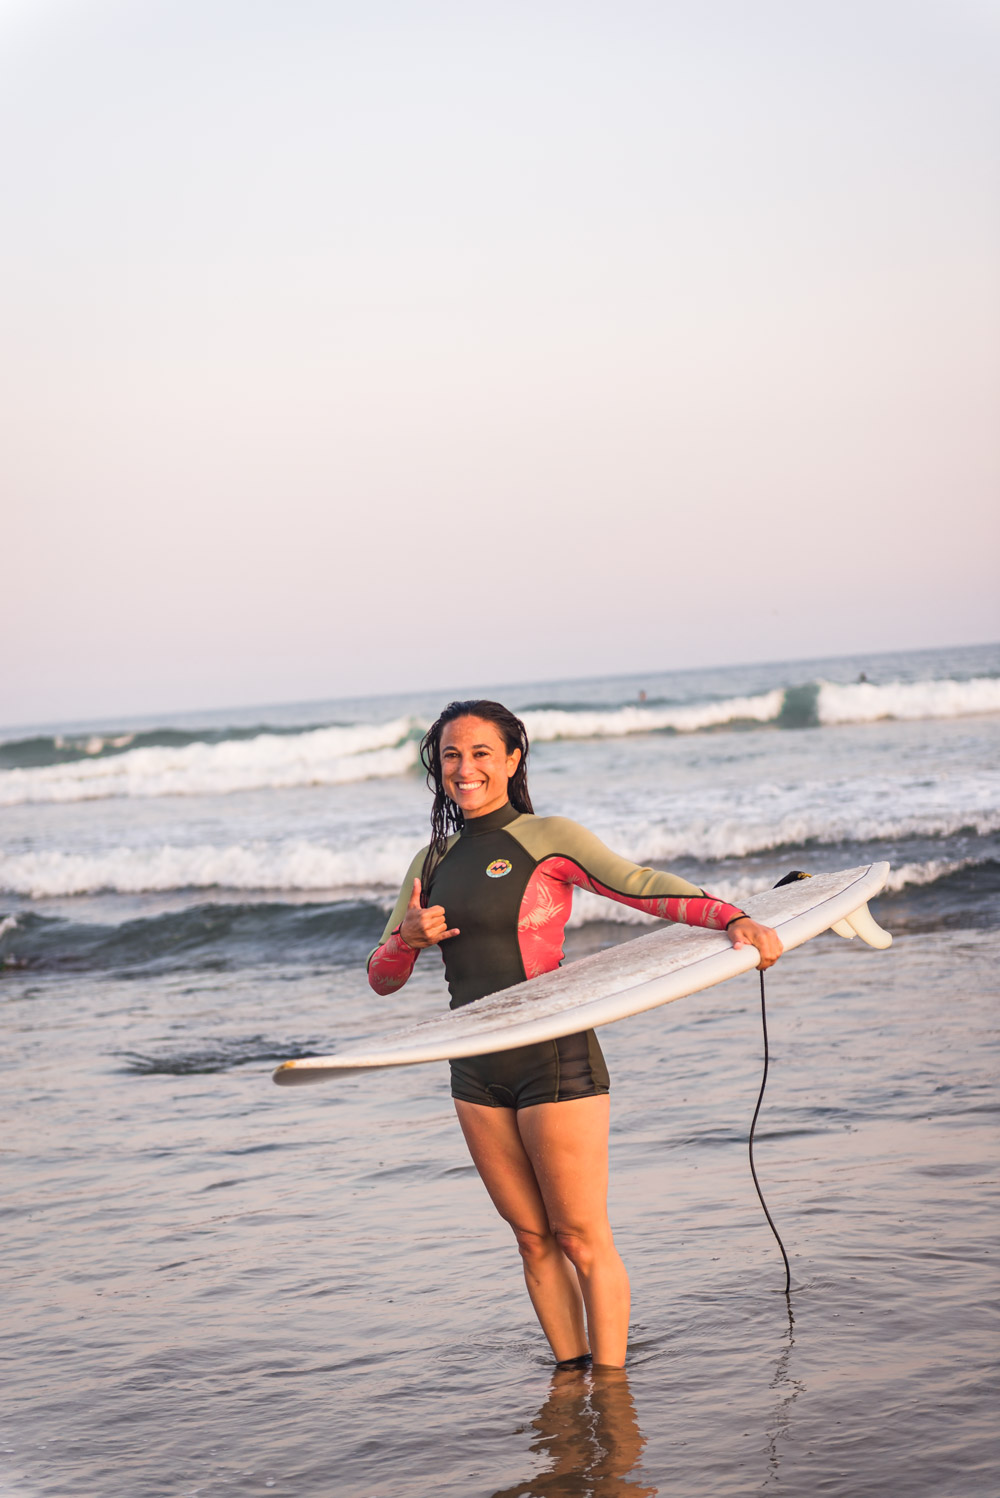 Chef Daniela Gerson, post surf session, in her wetsuit giving a shaka to the camera.